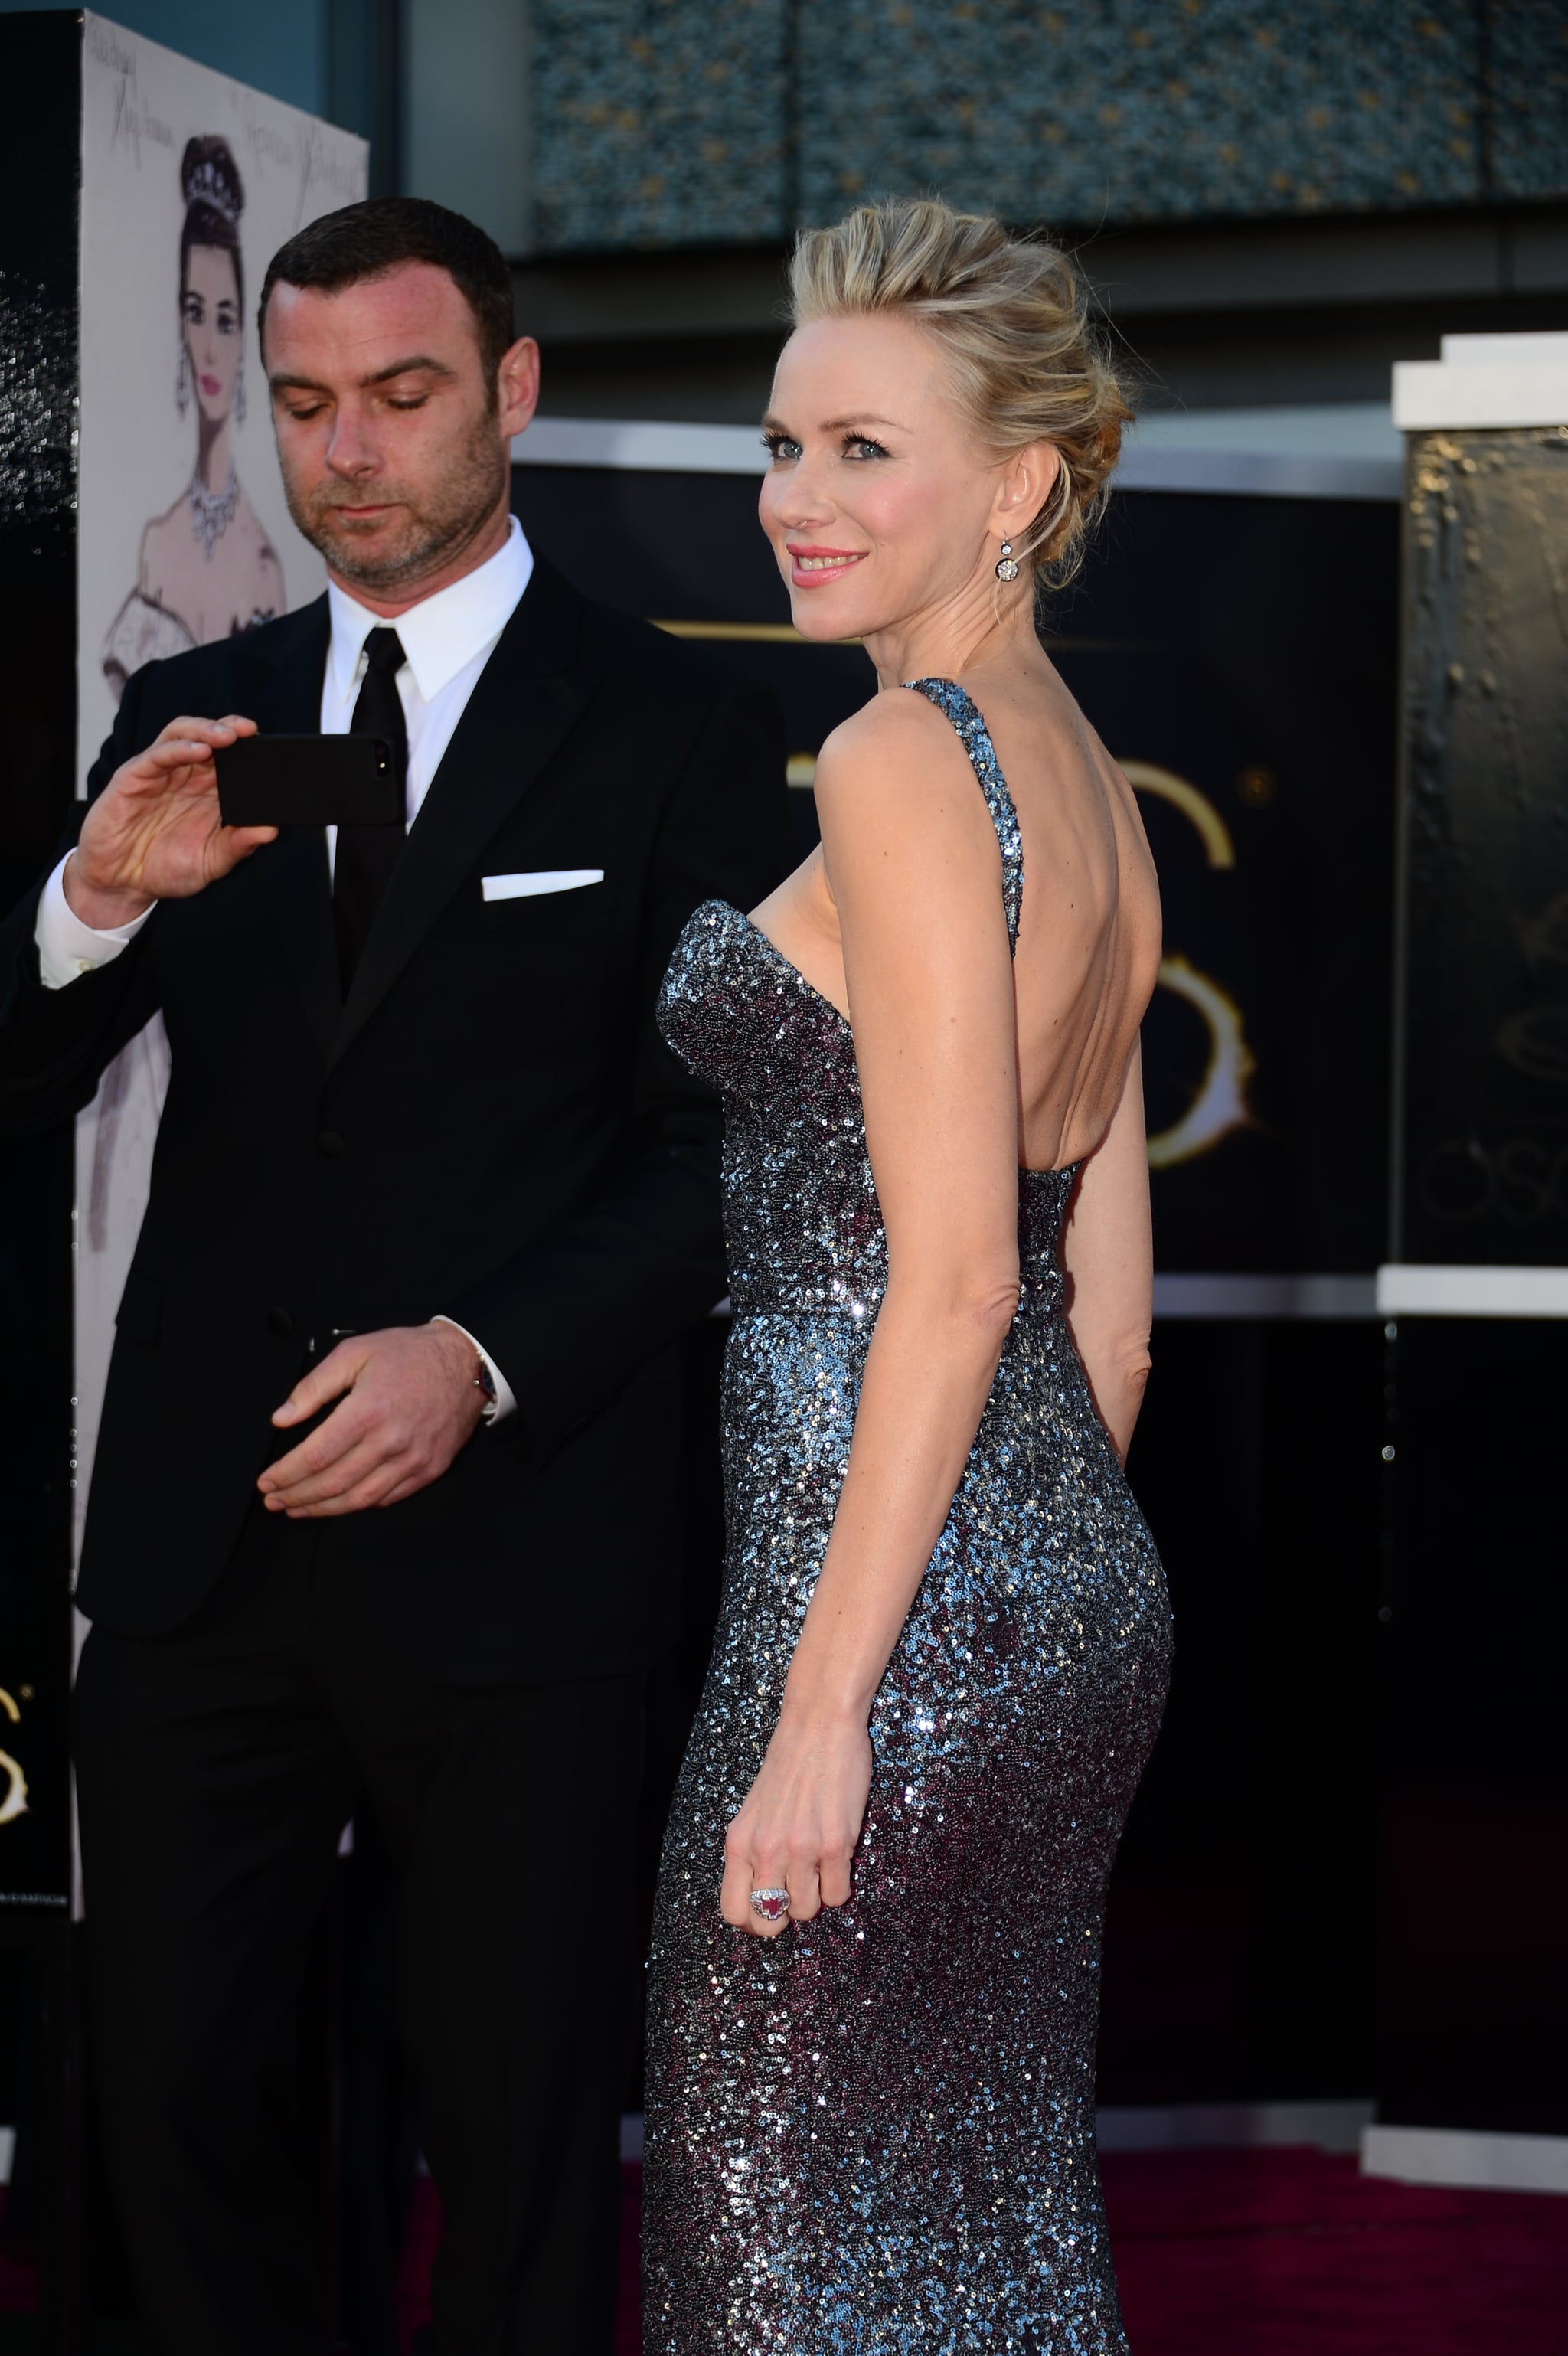 Liev Schreiber snapped a photo of Naomi Watts to remember the moment.